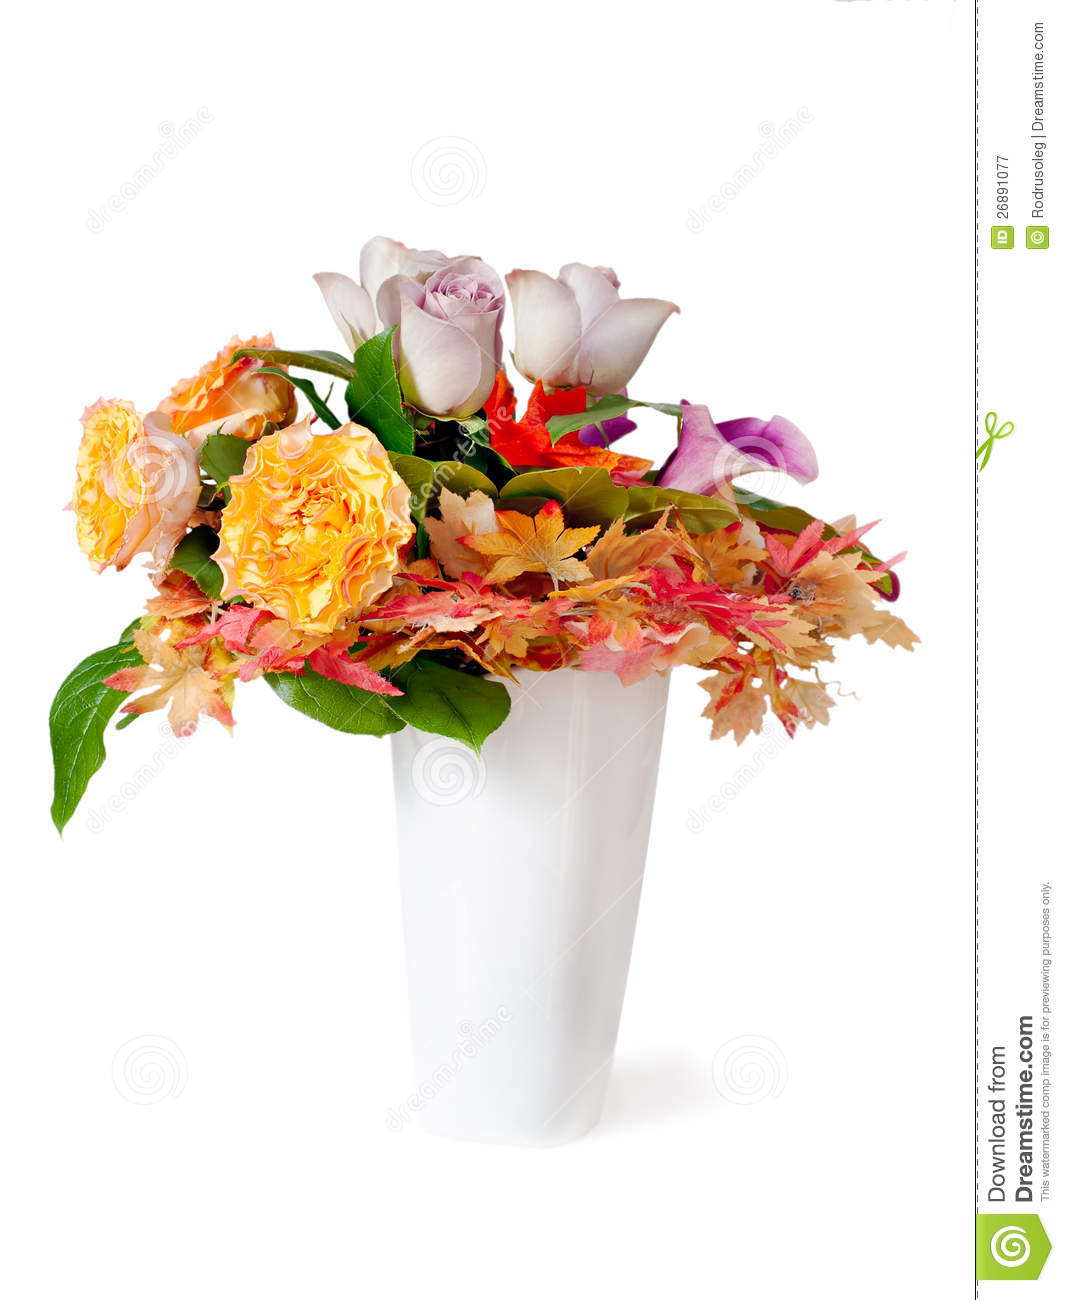 779 Autumn Centerpiece Flower Photos Free Royalty Free Stock Photos From Dreamstime